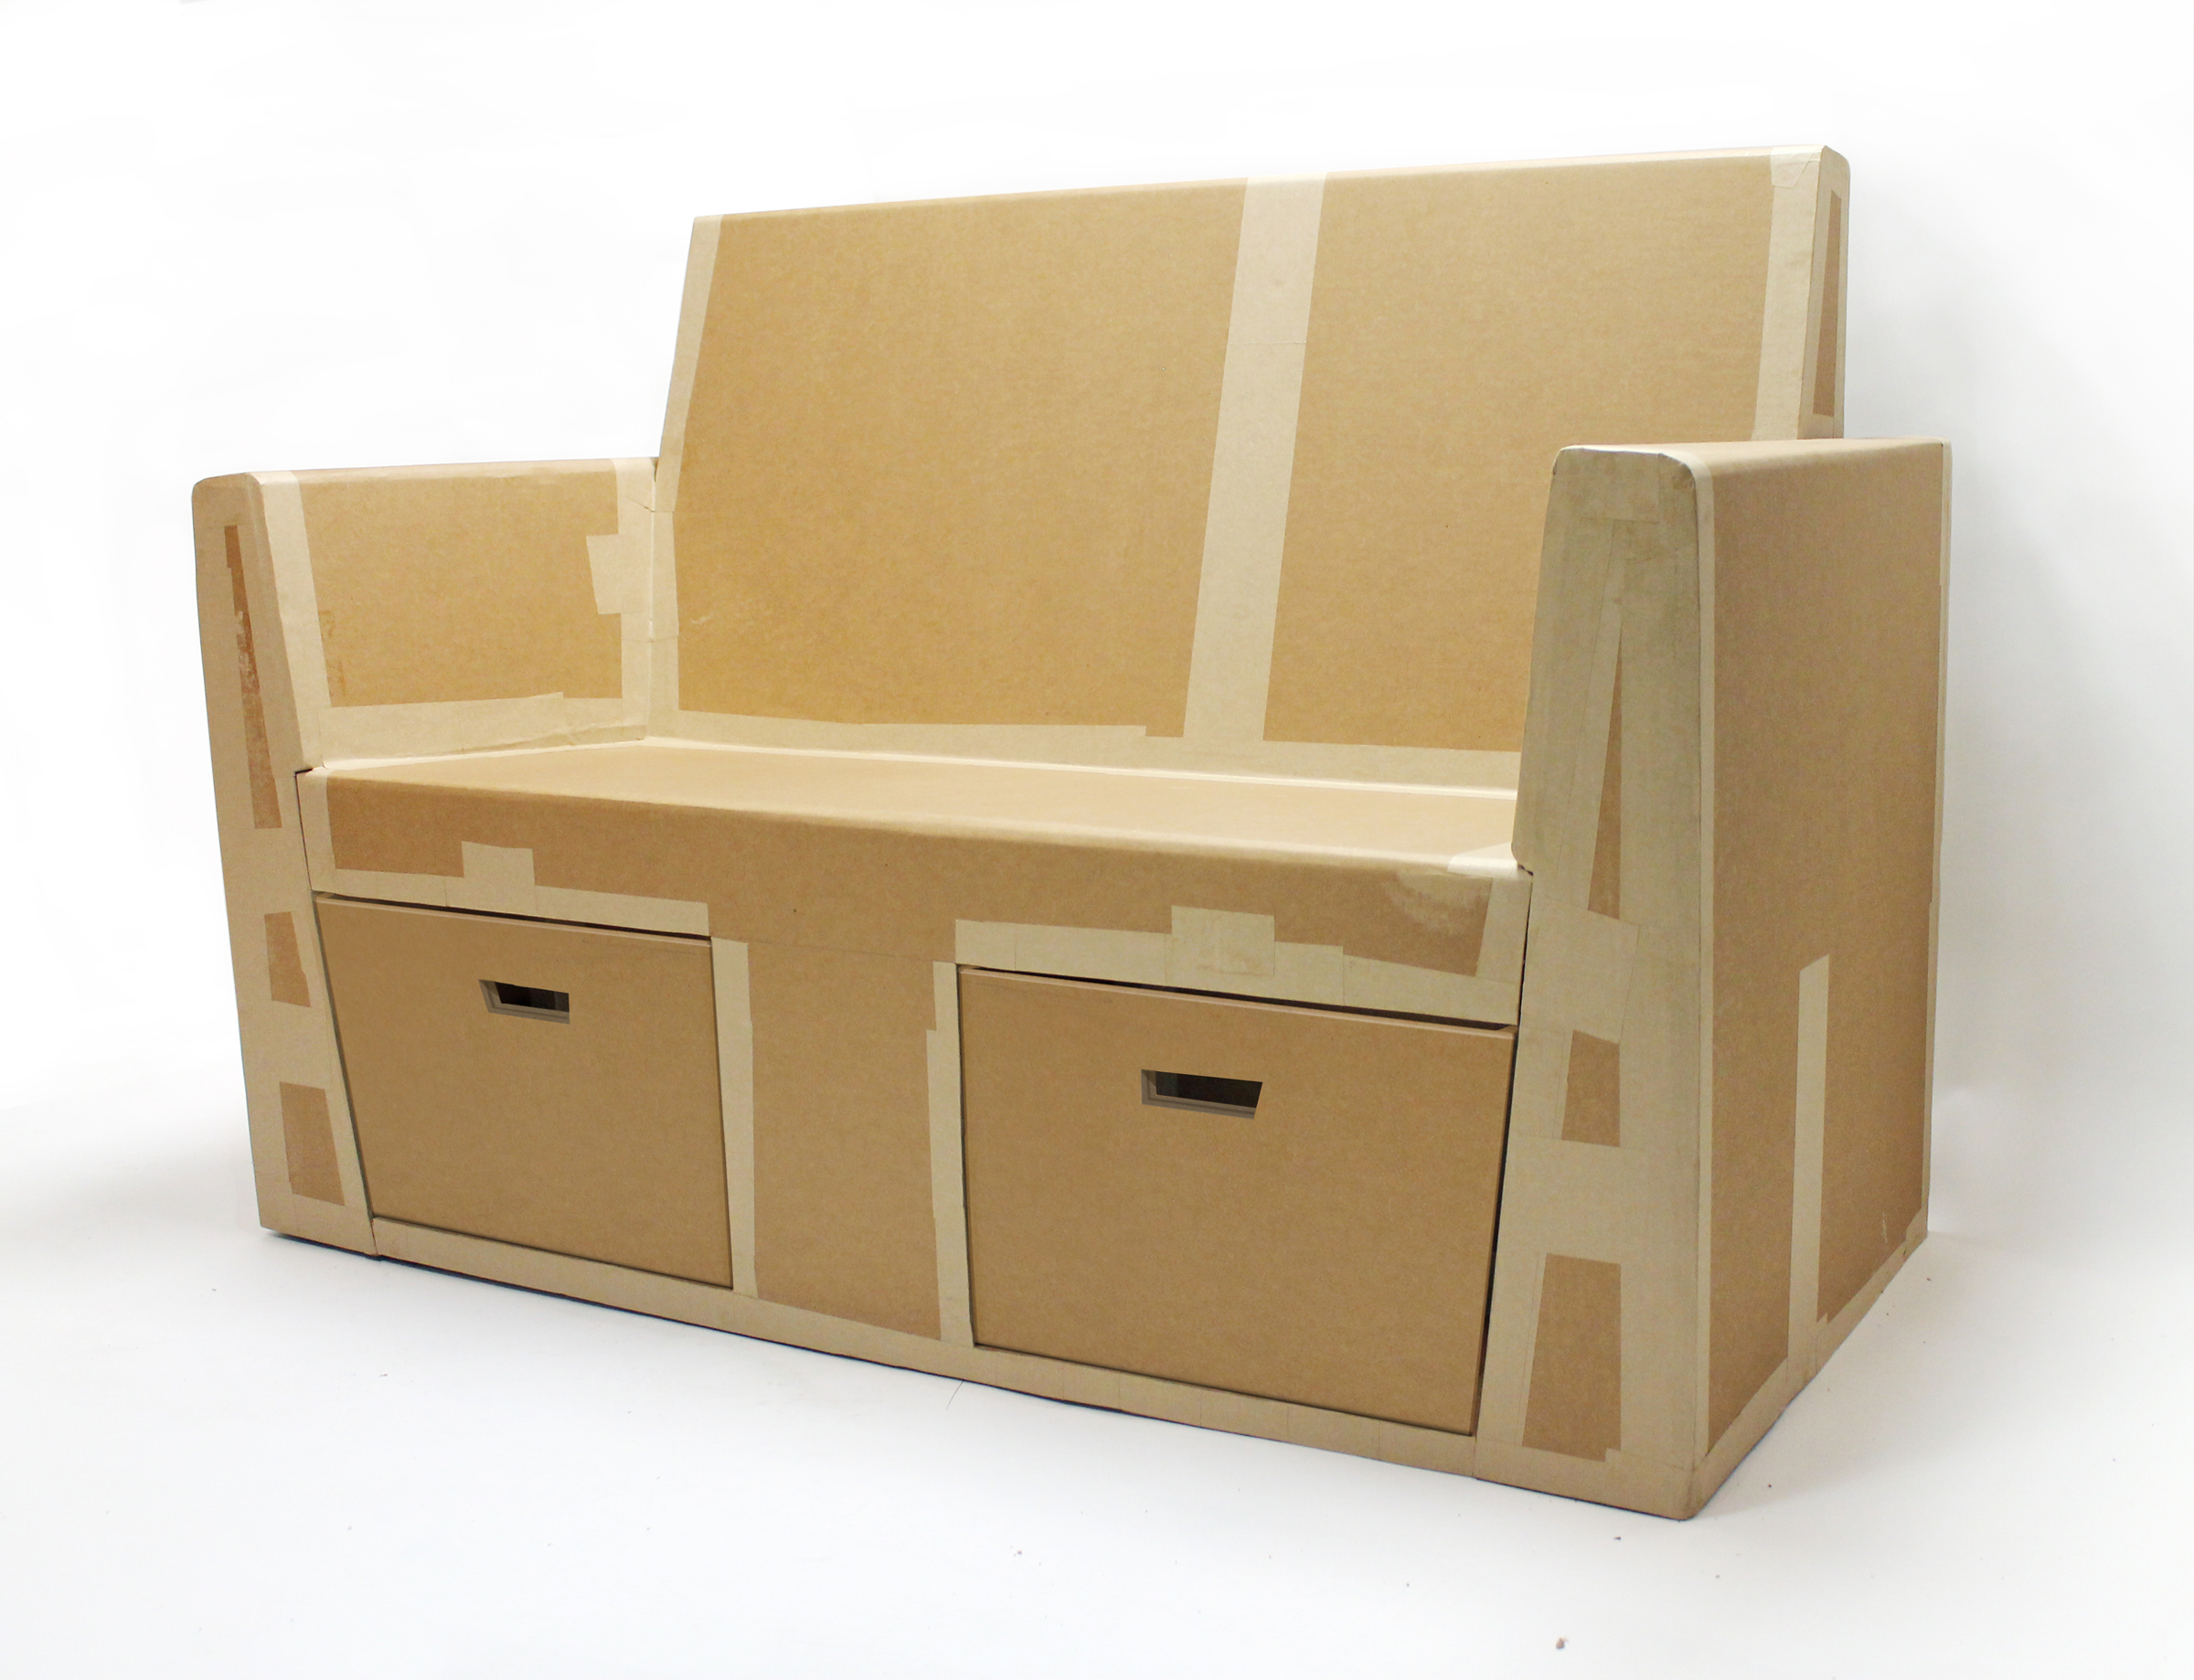 Cardboard furniture techniques how to achieve strength growing up - Cardboard Sofa By Rocio Alonso At Coroflot Com